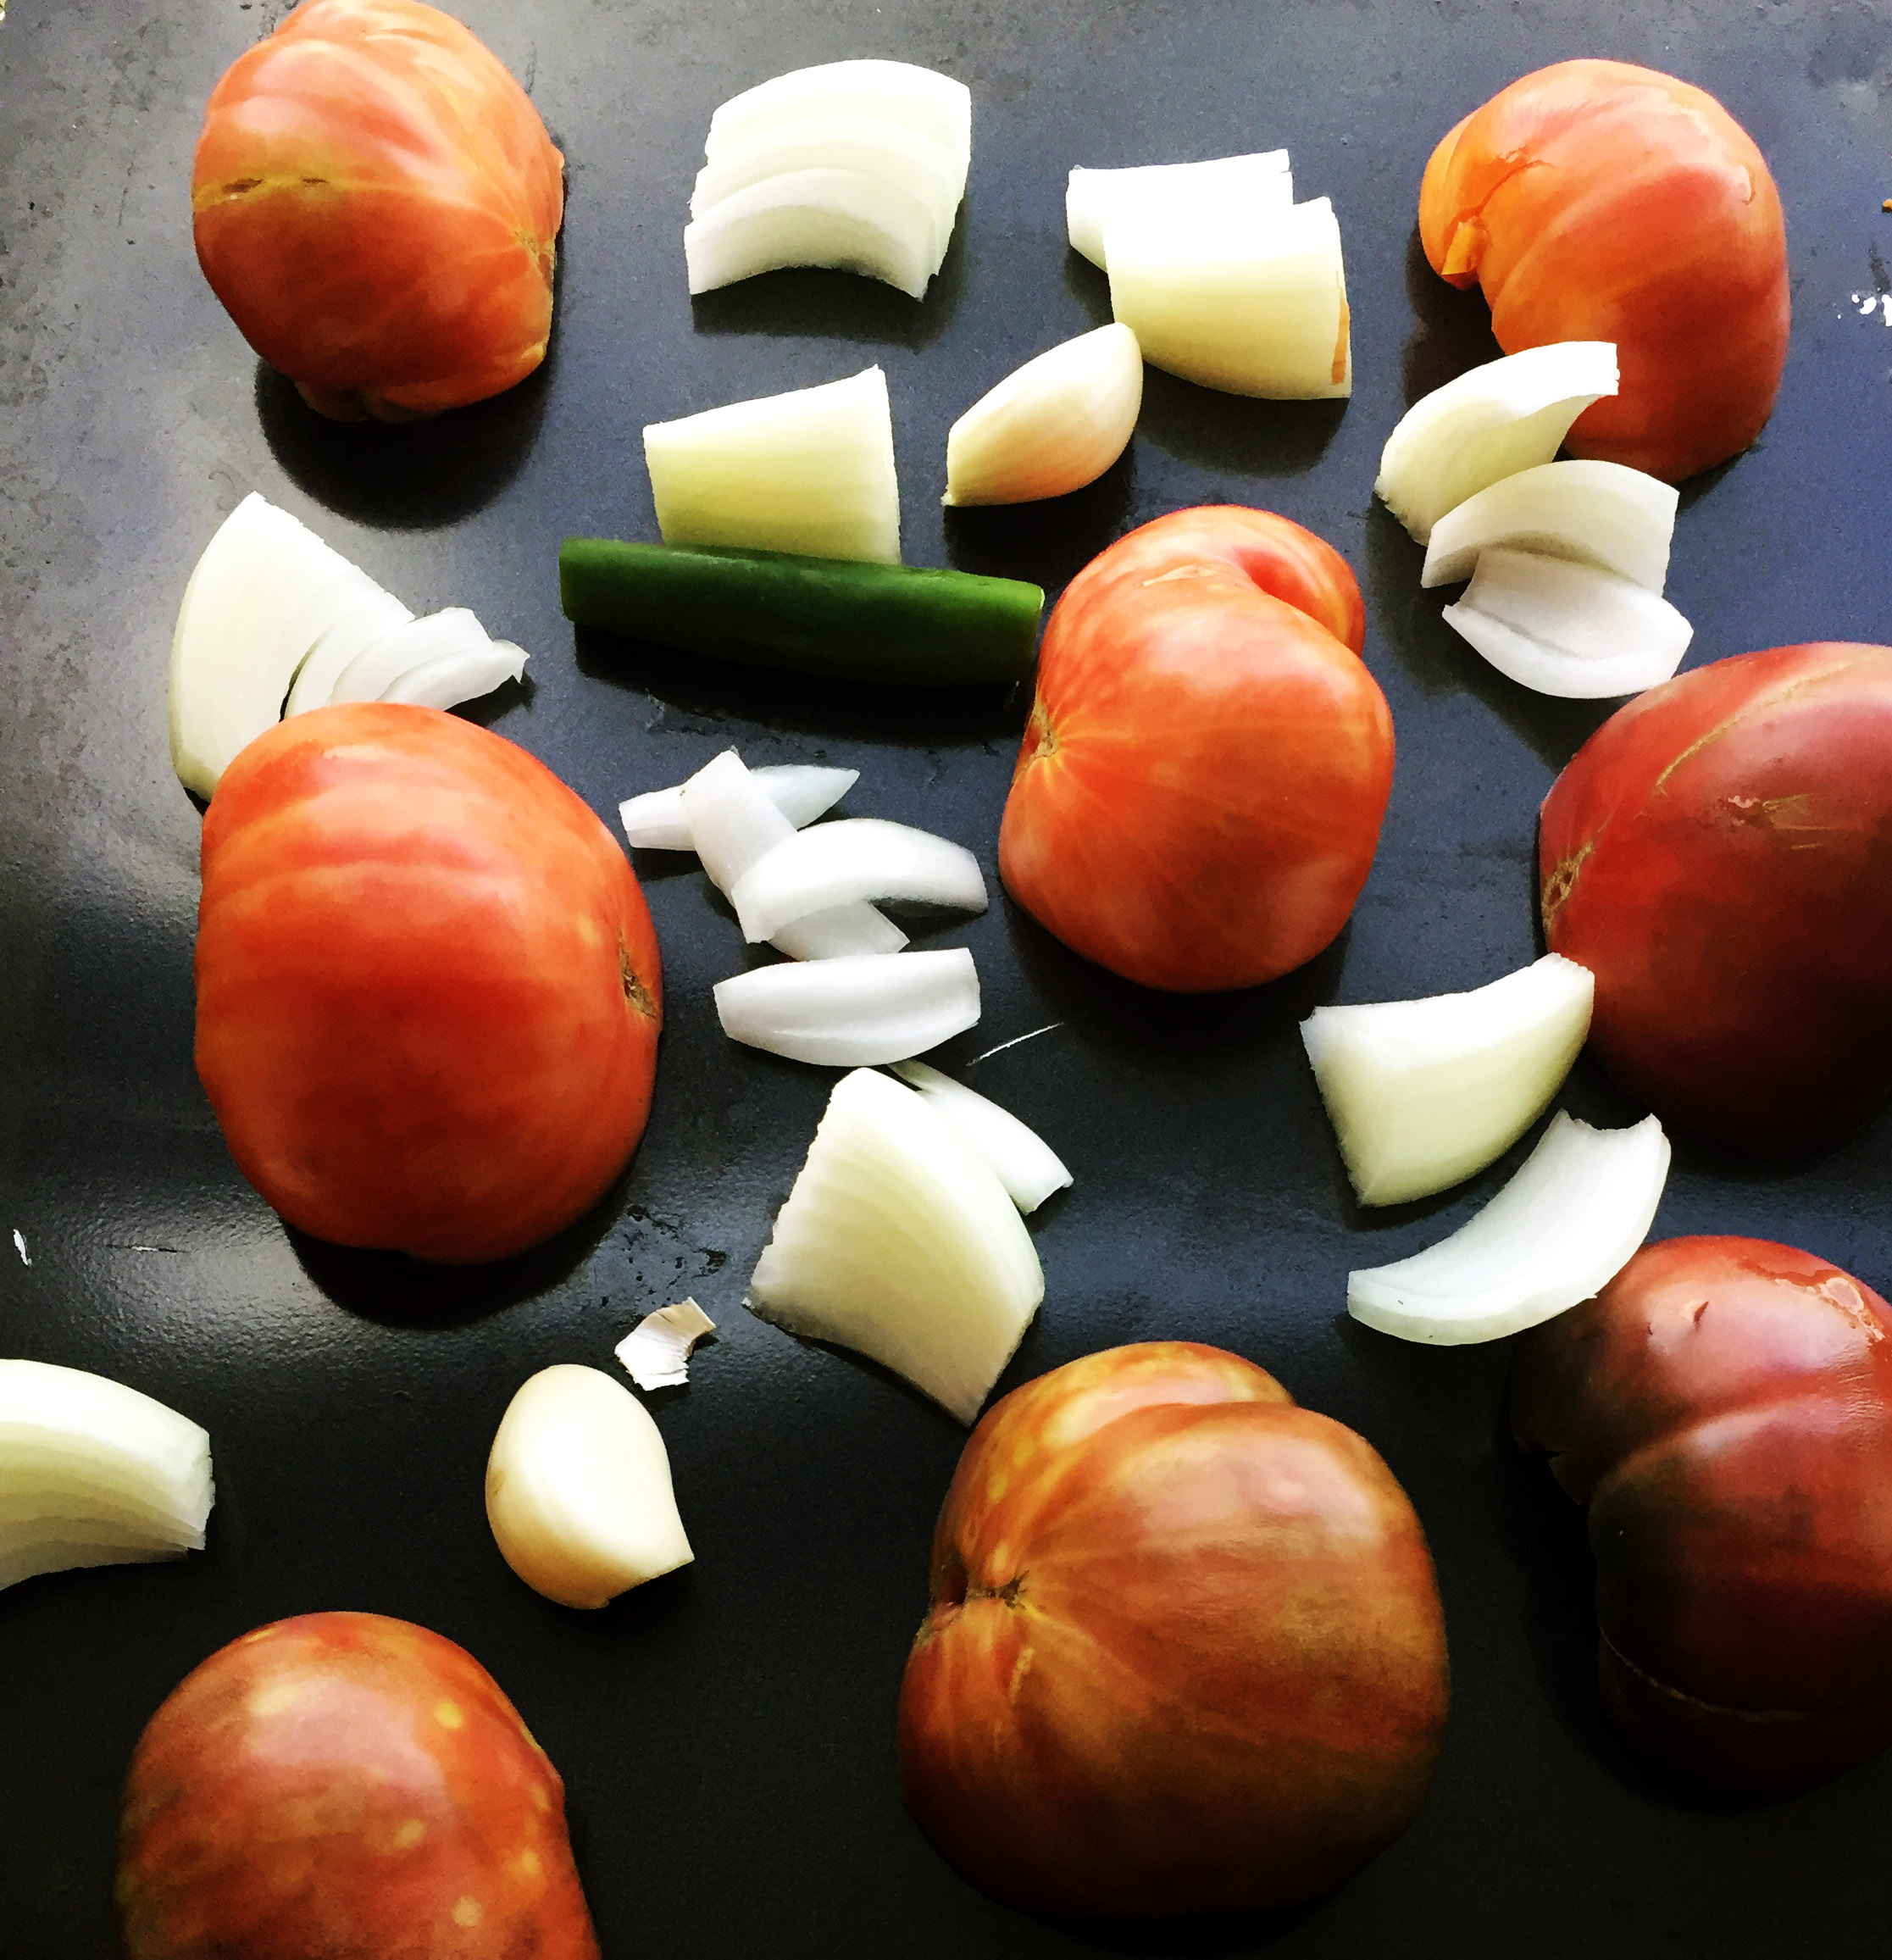 1. Place veggies for salsa on a baking sheet and place into oven set on broil (525) for 10 minutes.